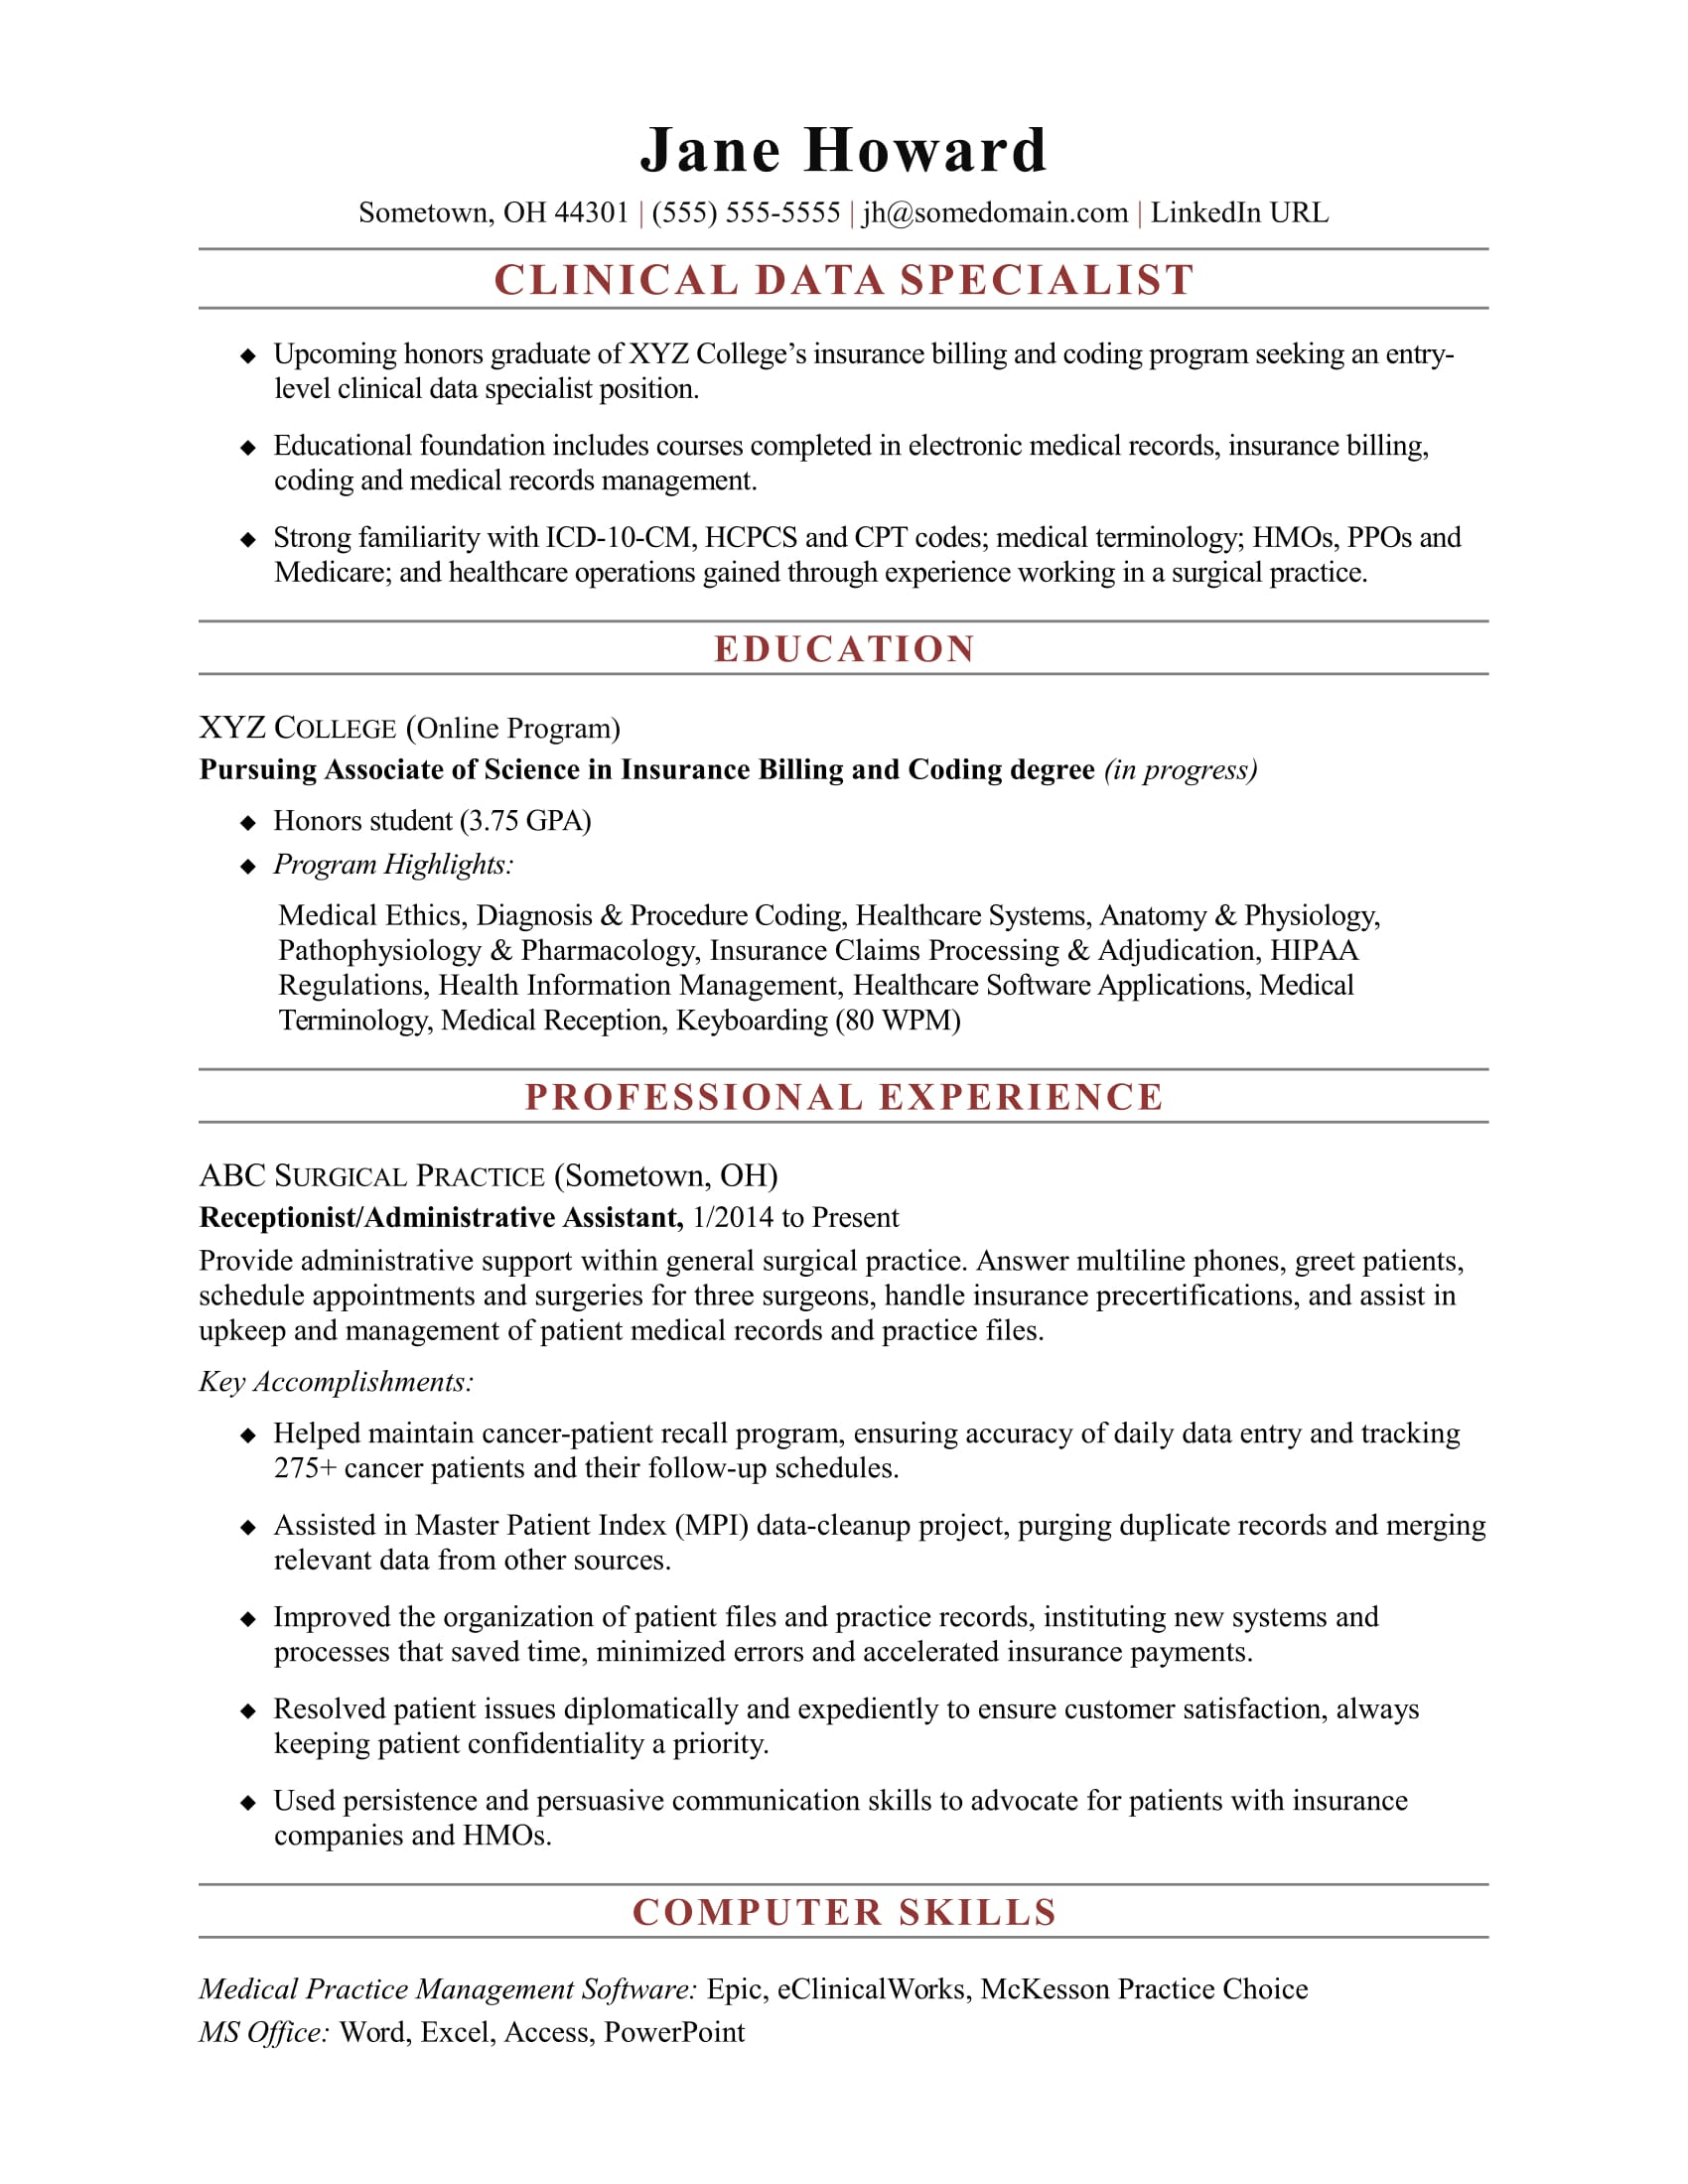 Sample Resume For An Entry Level Clinical Data Specialist  Data Entry Skills Resume